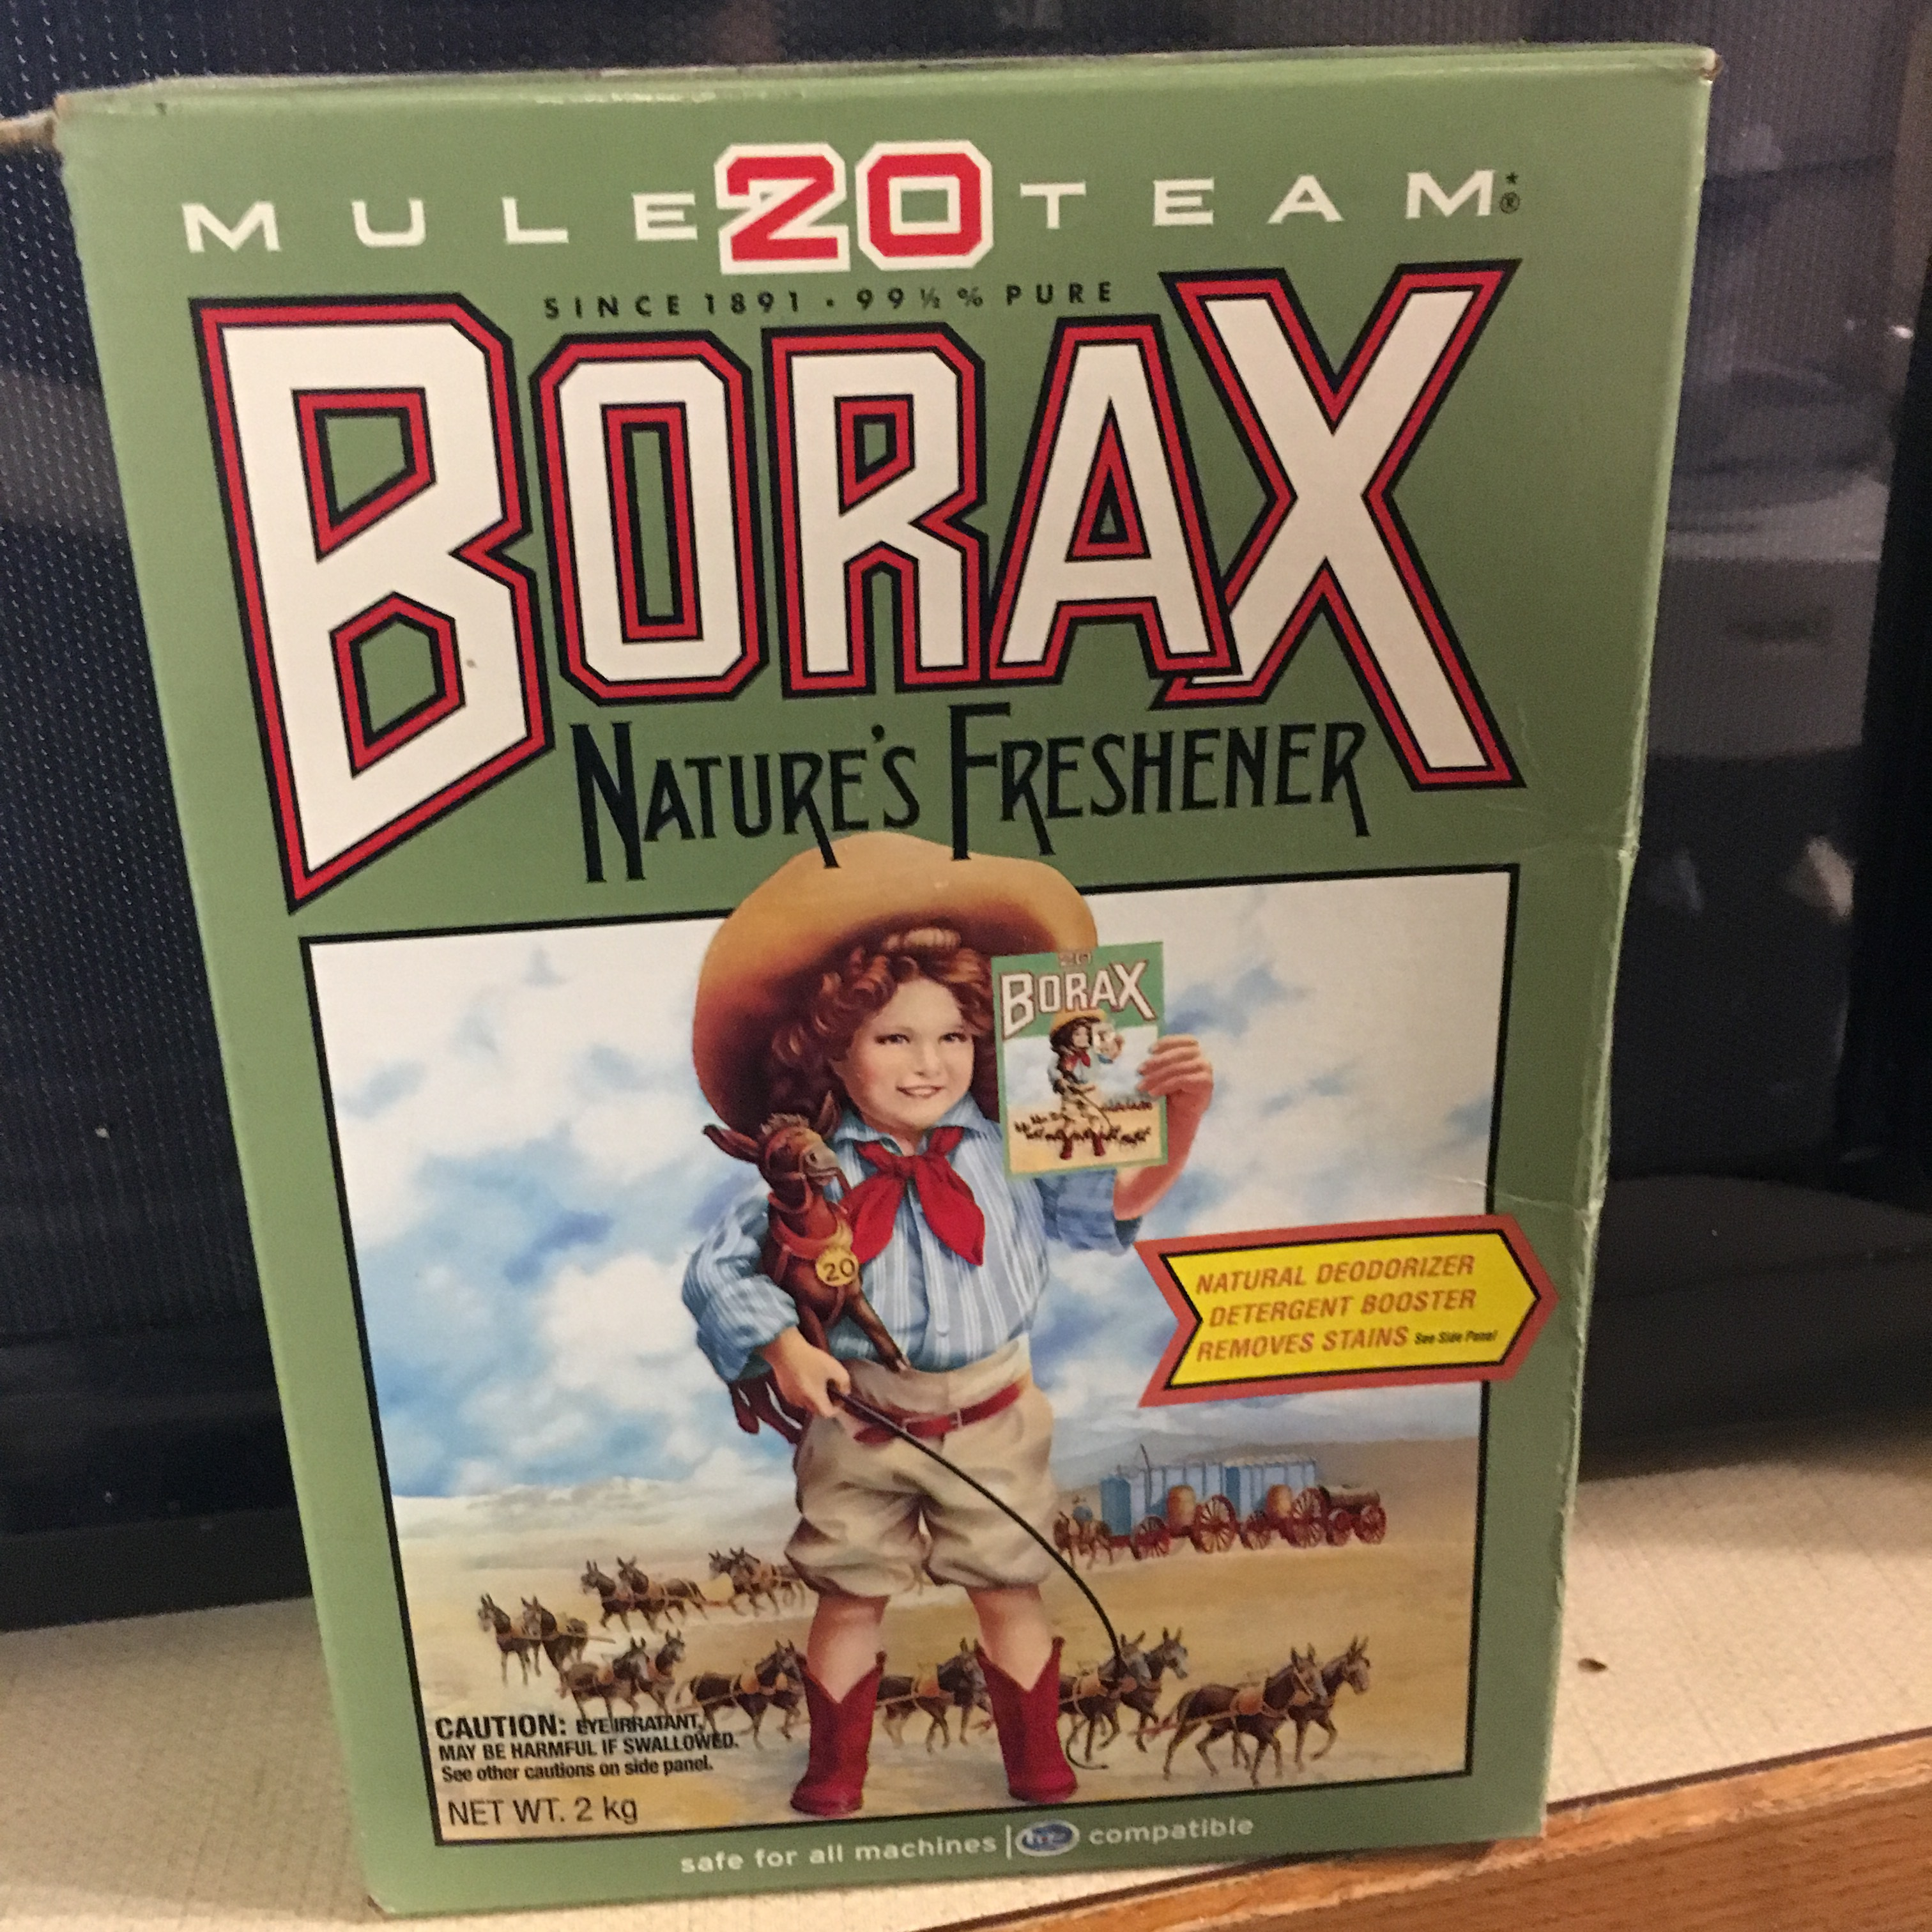 20 mule team borax all natural laundry booster reviews in household cleaning products for 20 mule team borax swimming pools